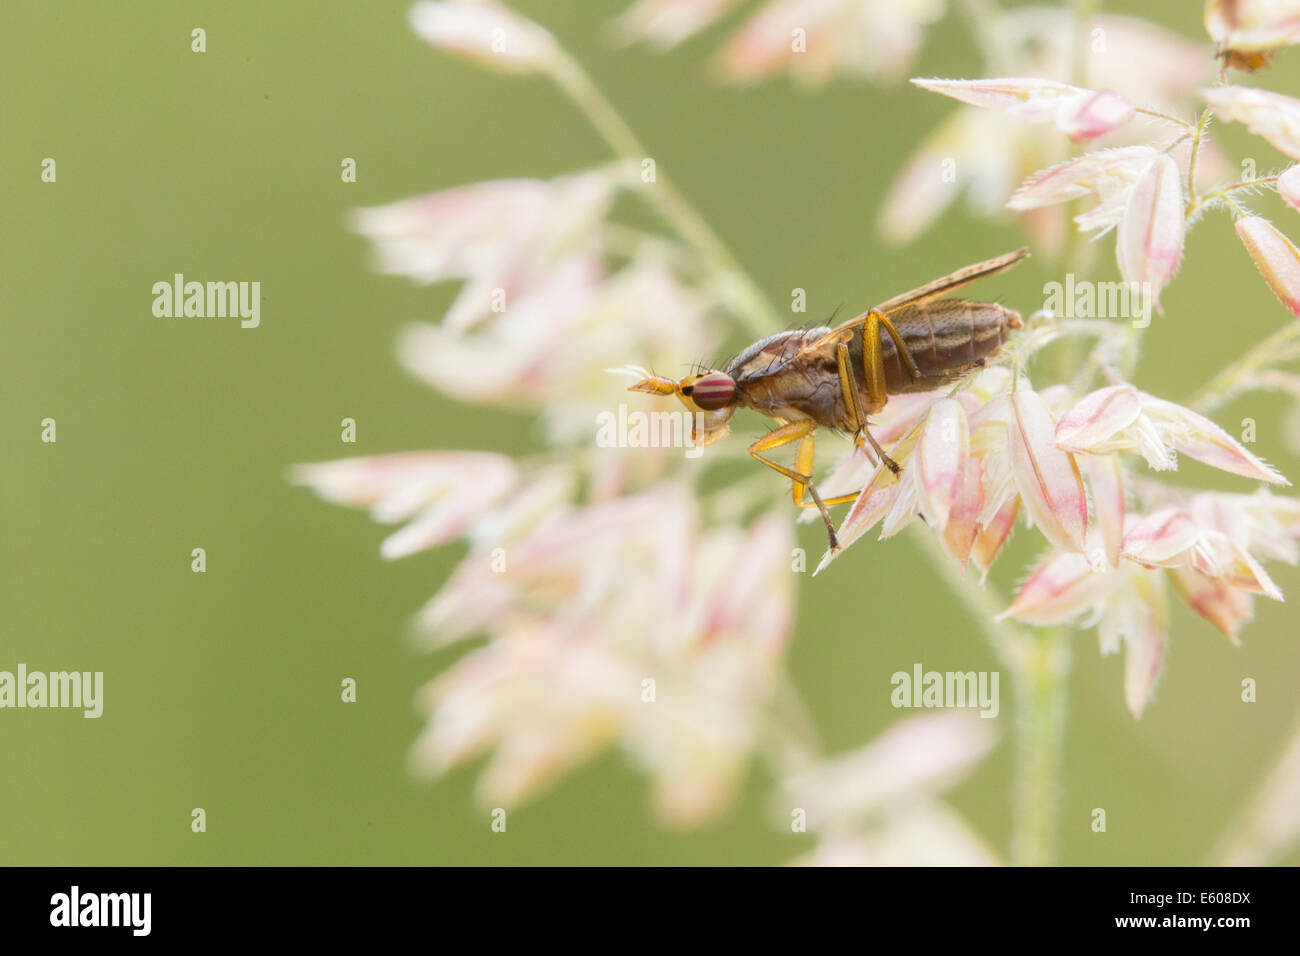 Deer fly perched on a plant. Stock Photo